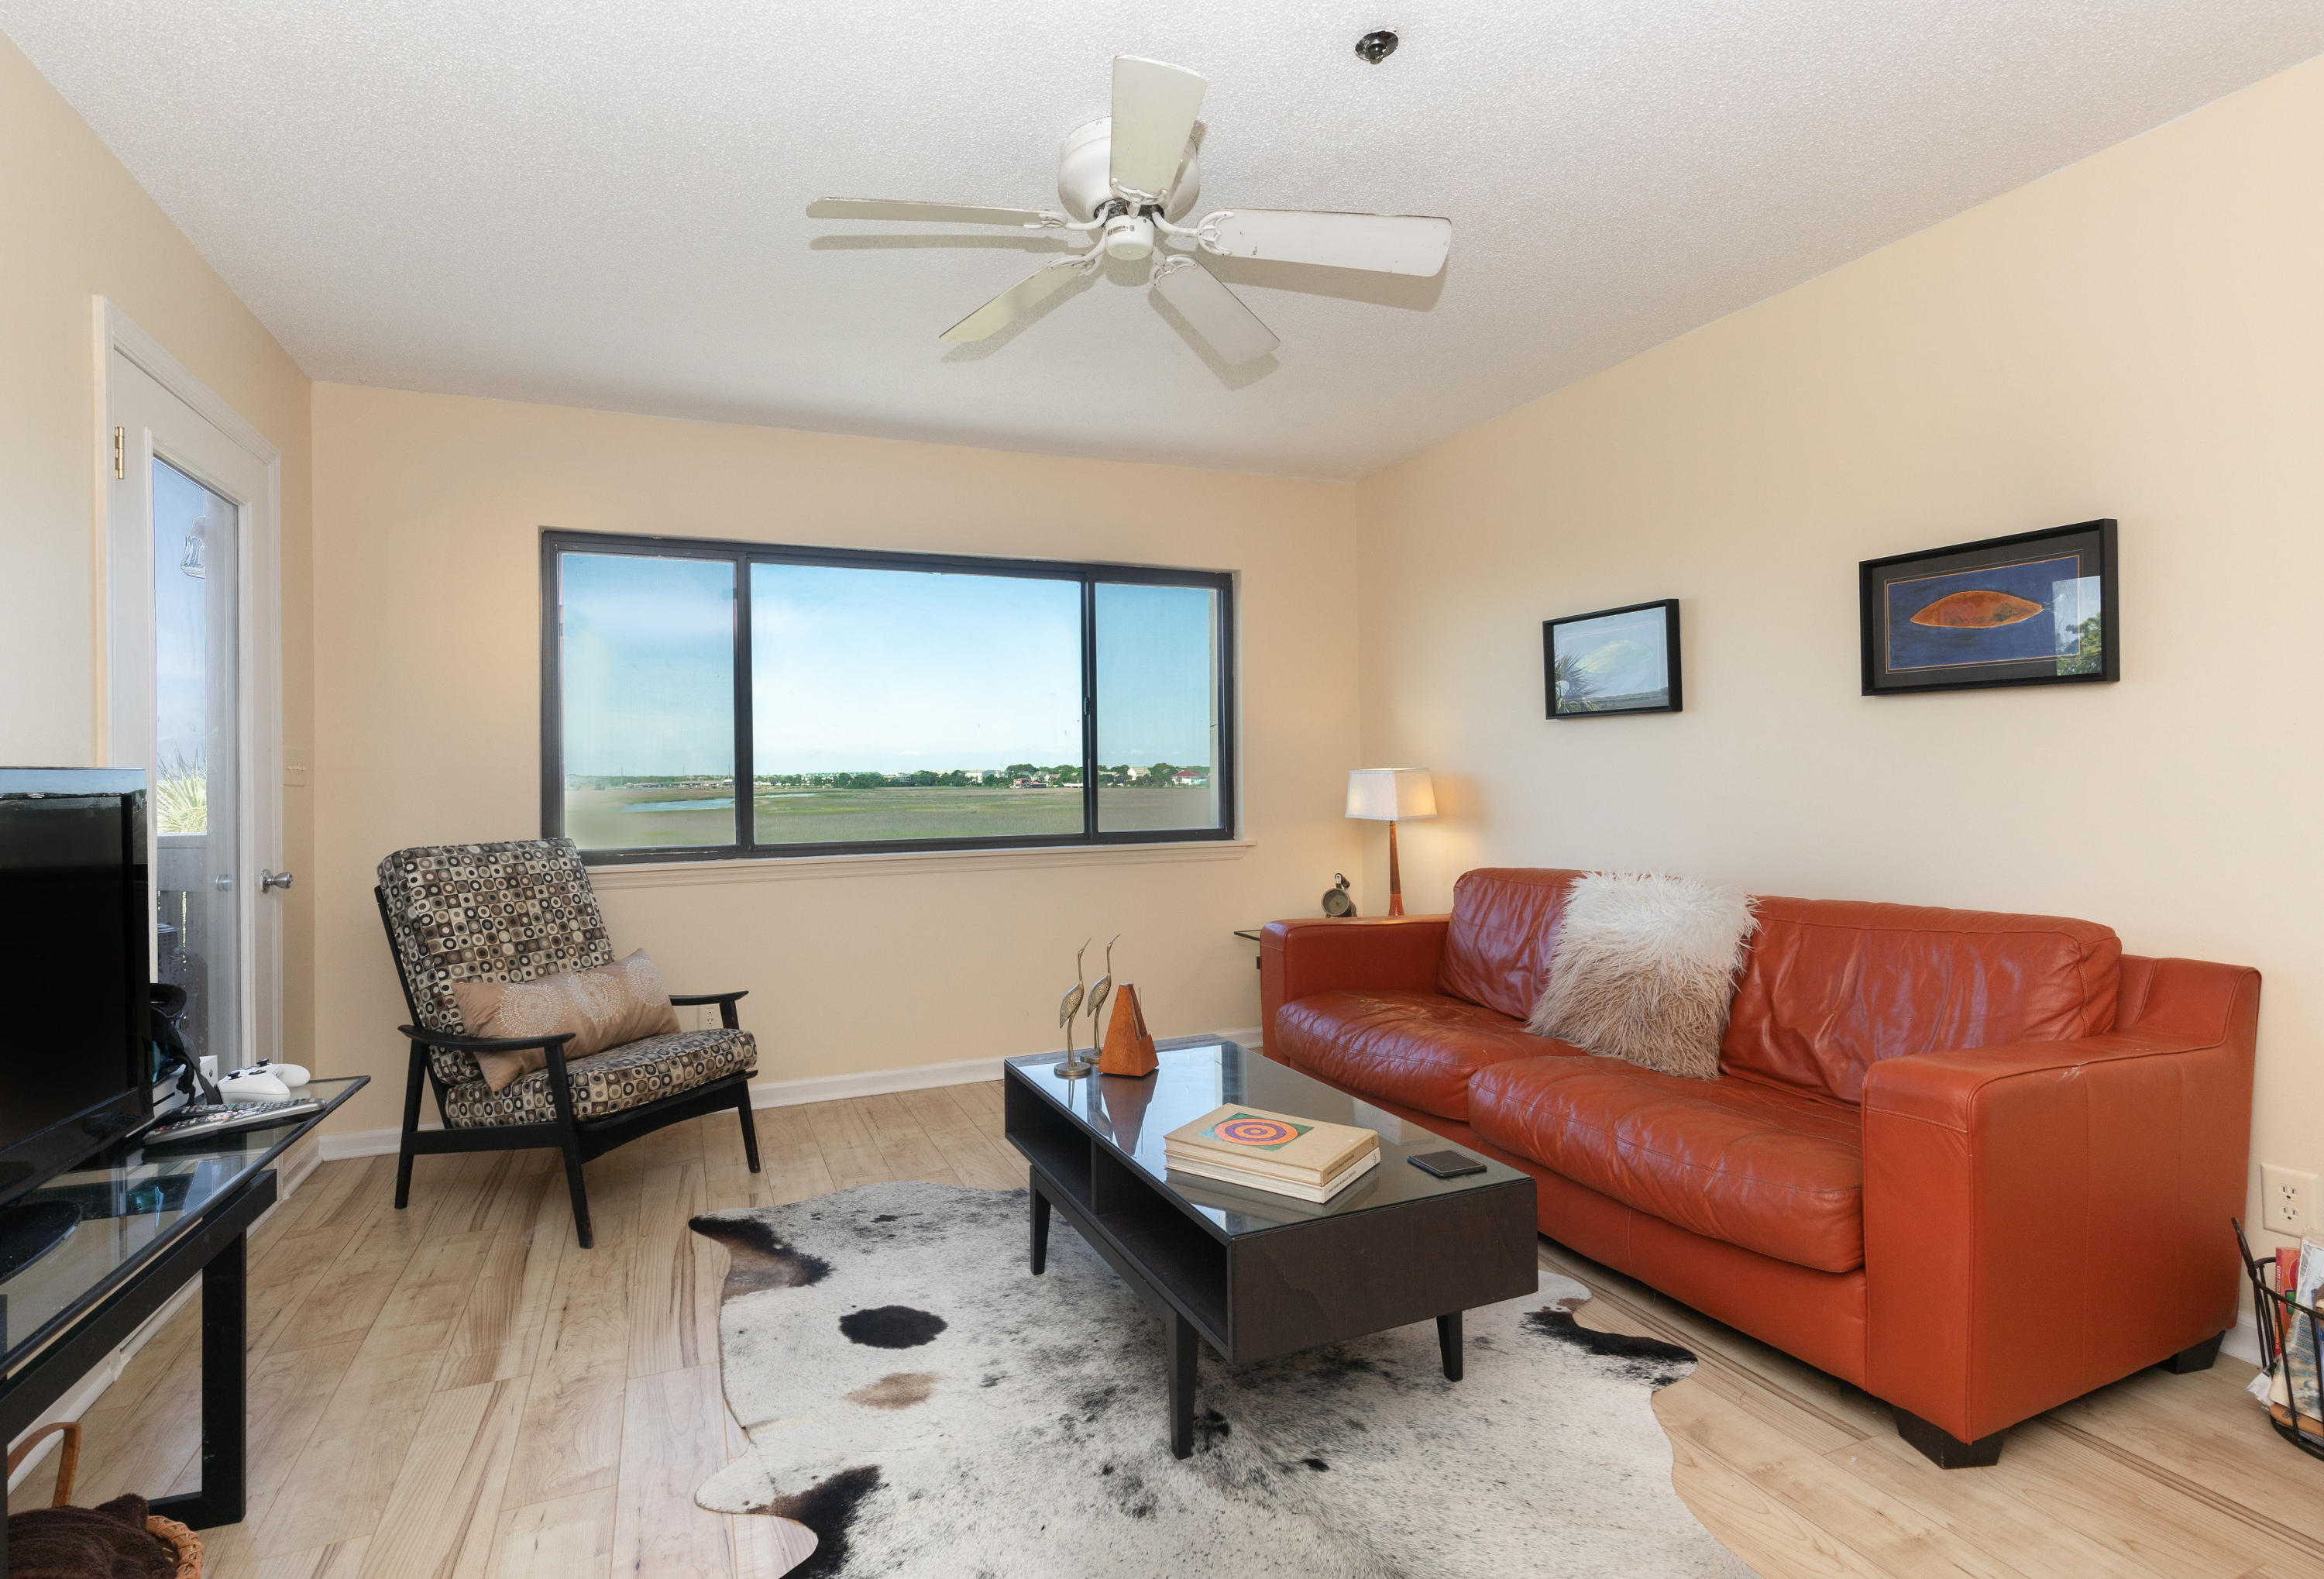 Mariners Cay Homes For Sale - 129 Marsh View Villas, Folly Beach, SC - 18